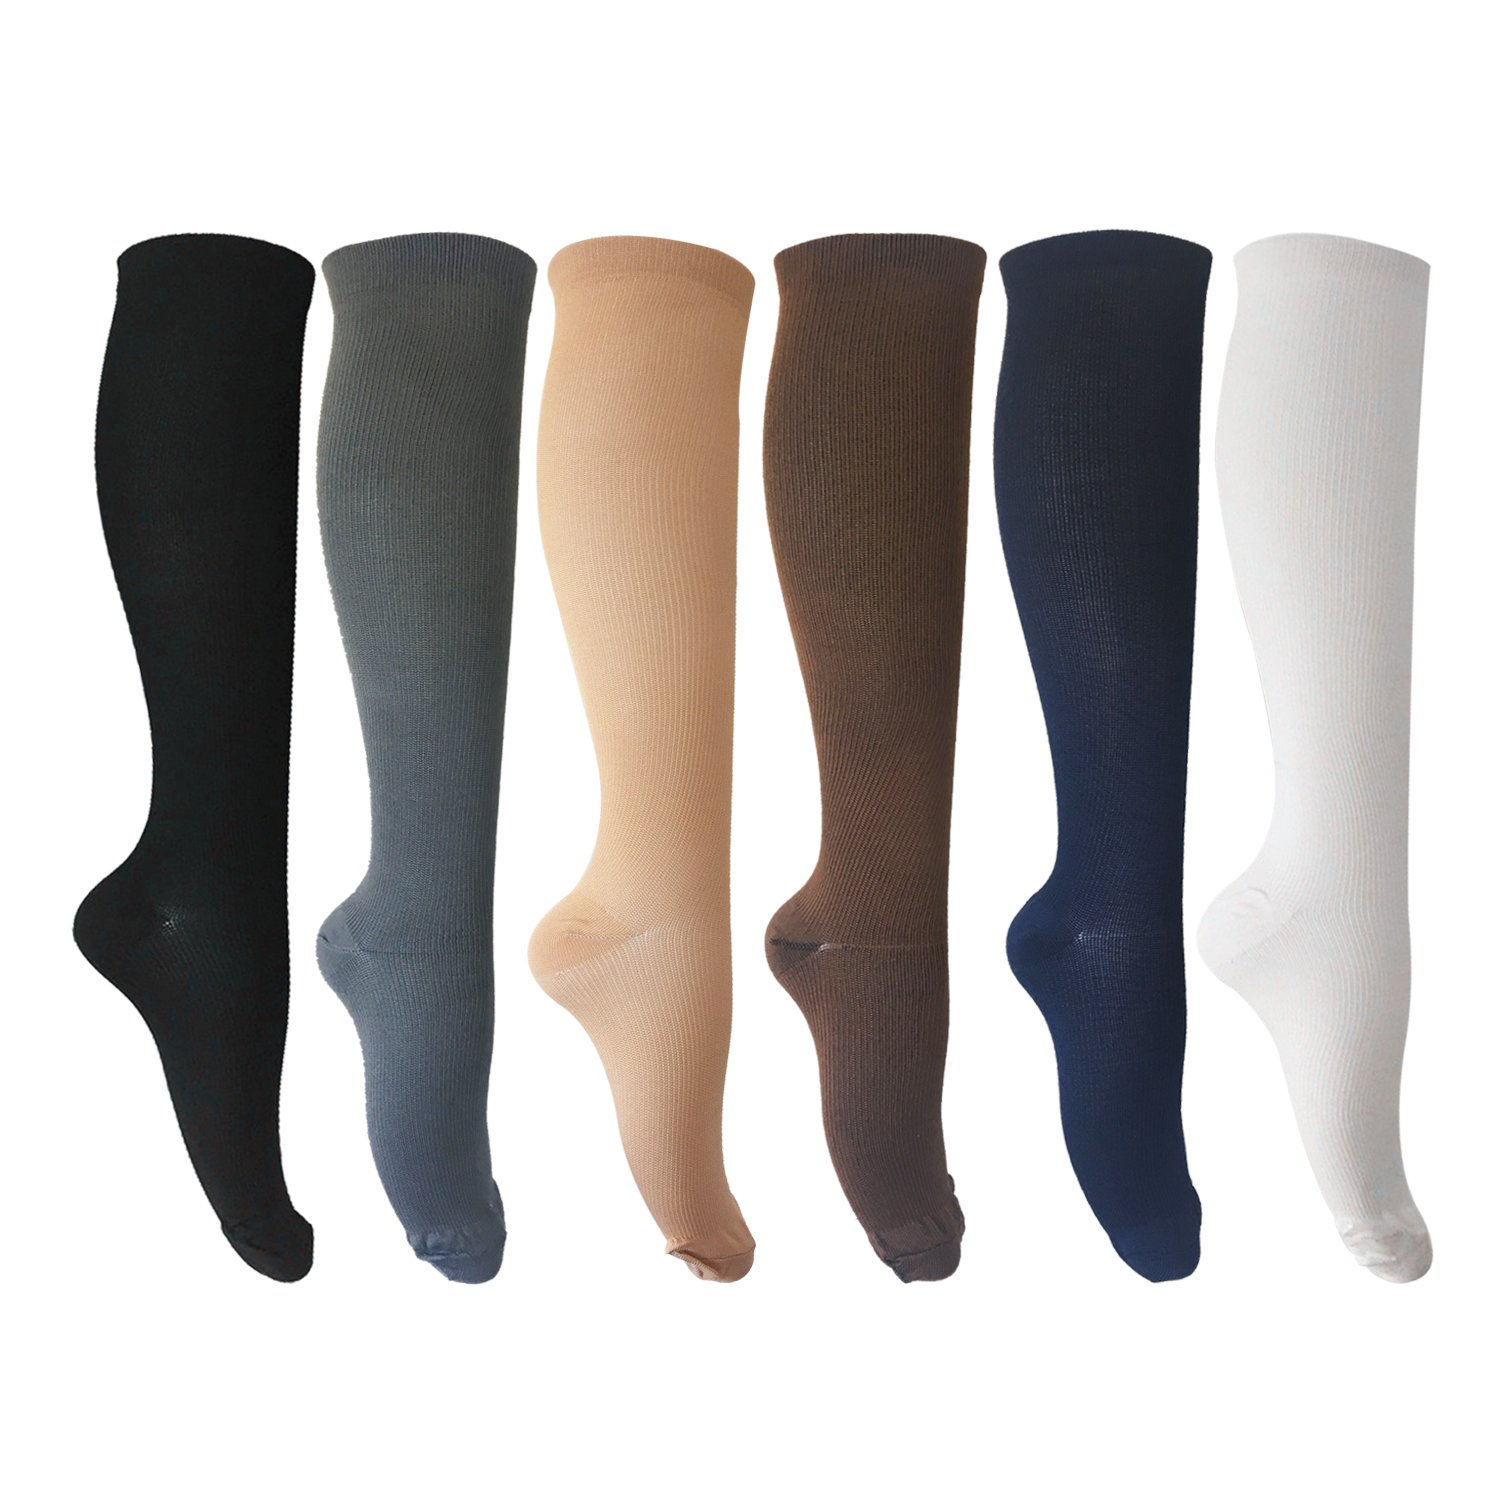 MIXSNOW 6 Pairs of Compression Socks for Men and Women for Running, Nurses, Shin Splints, Travel, Flight, Pregnancy & Maternity Large/X-Large Assorted 1 (6 Colors) by MIXSNOW